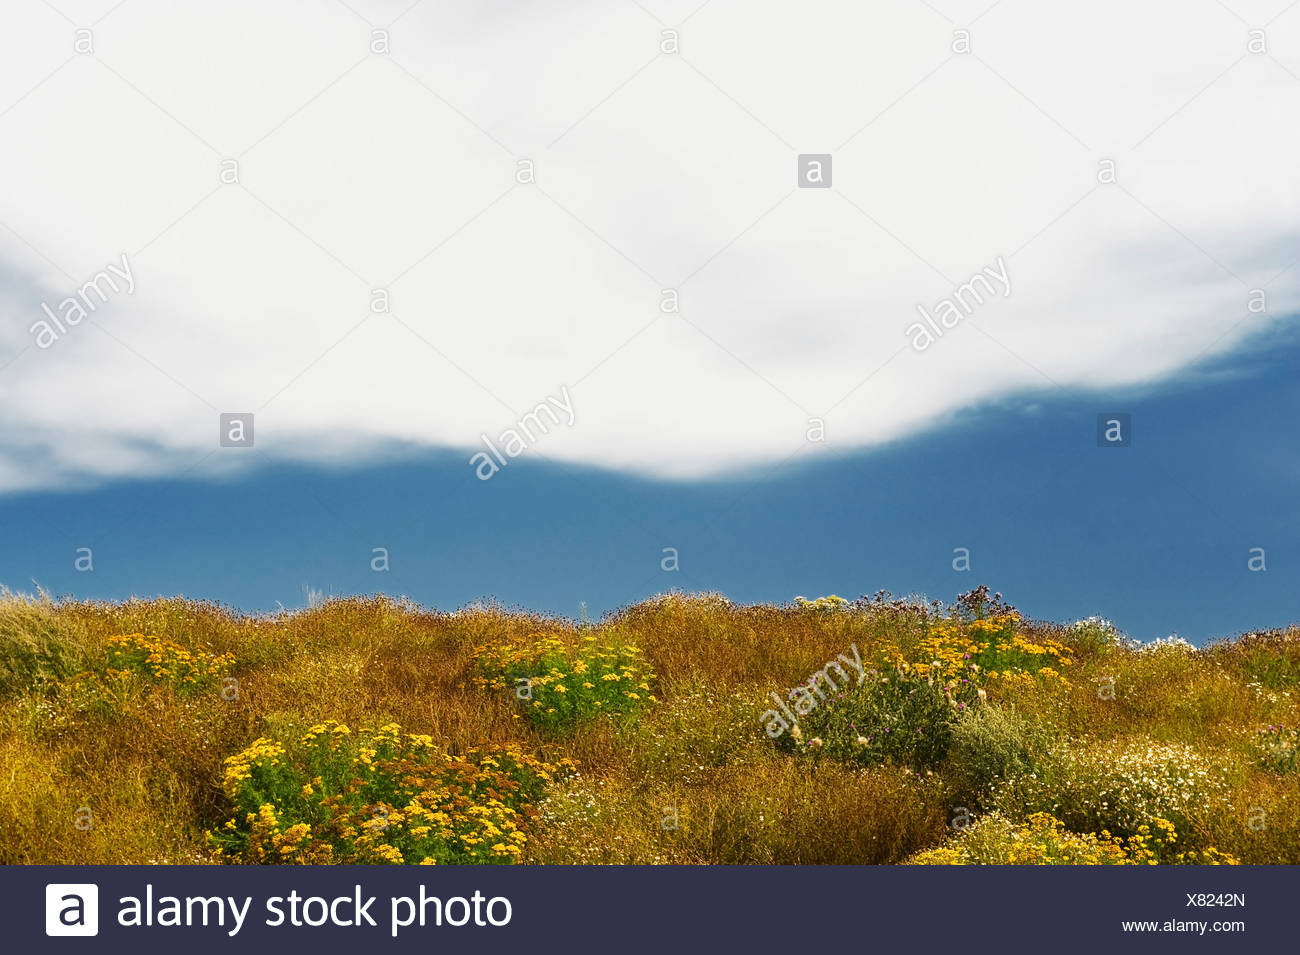 Flowery meadow over blurred background - Stock Image